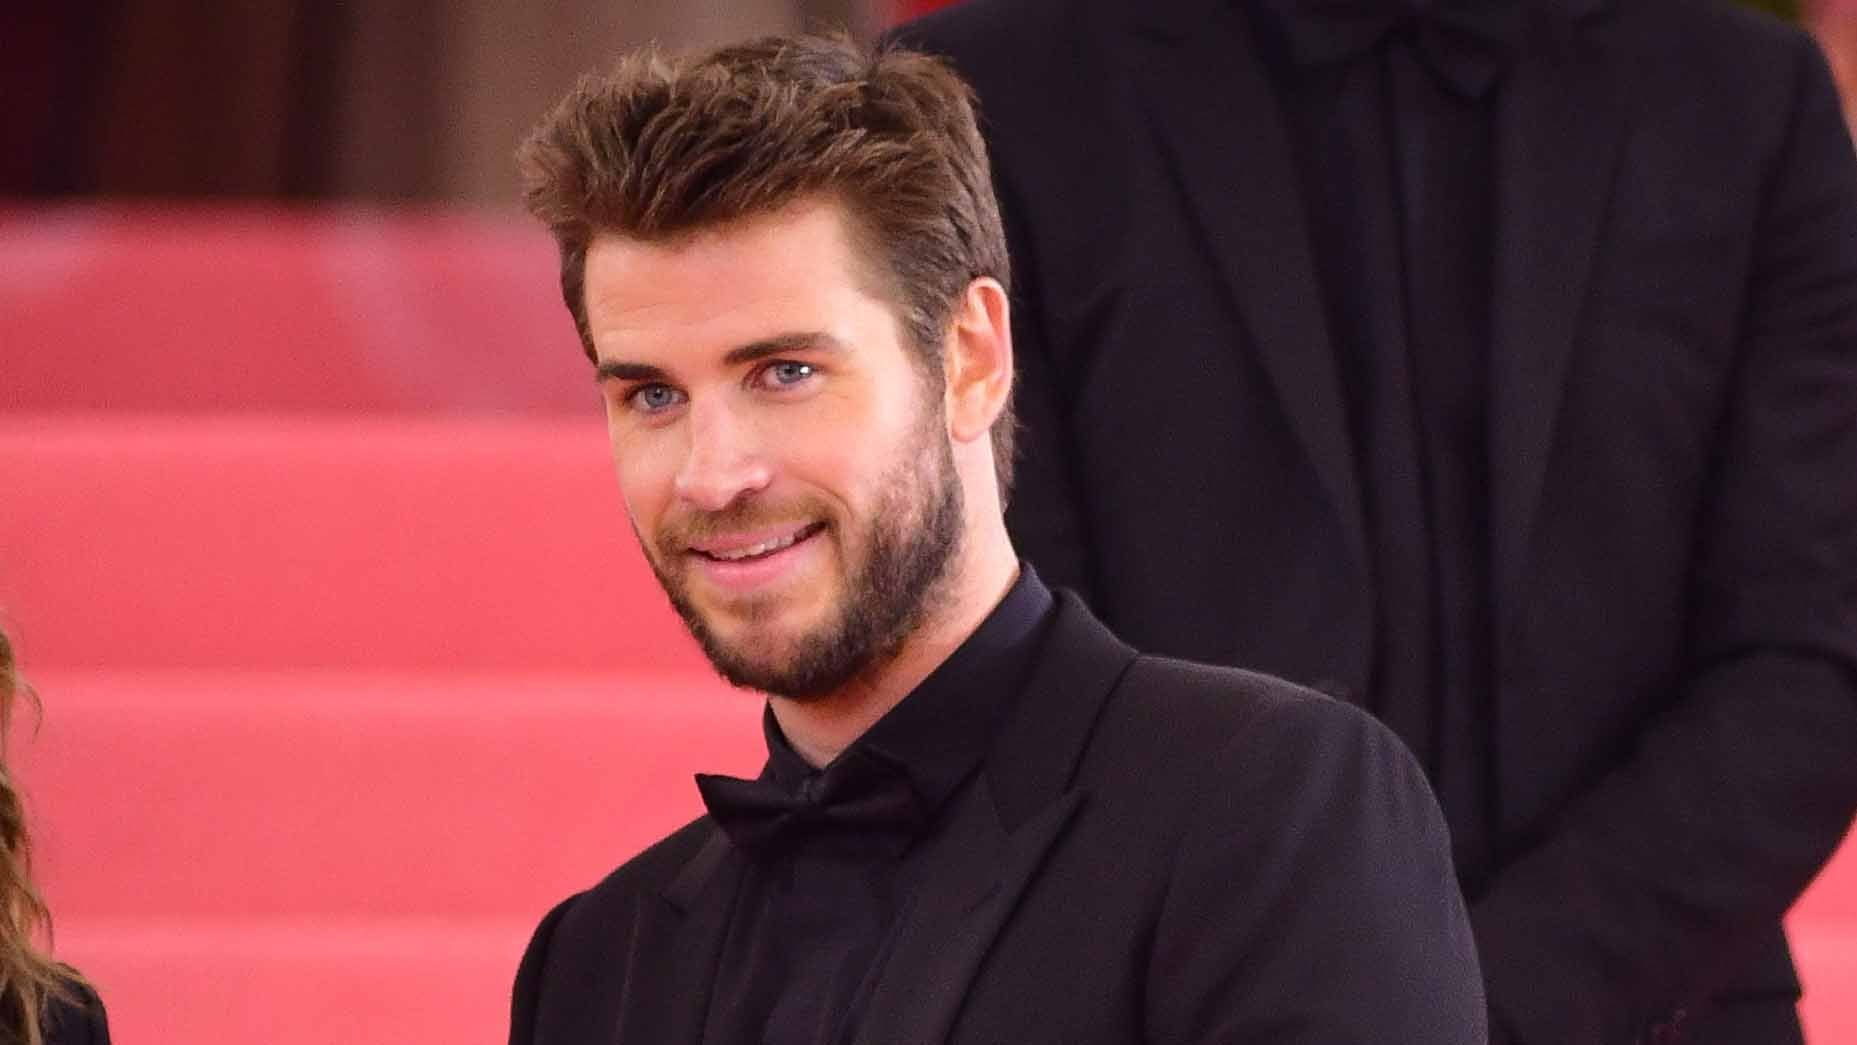 Liam Hemsworth Just Discovered He's a 'Thirst Trap'